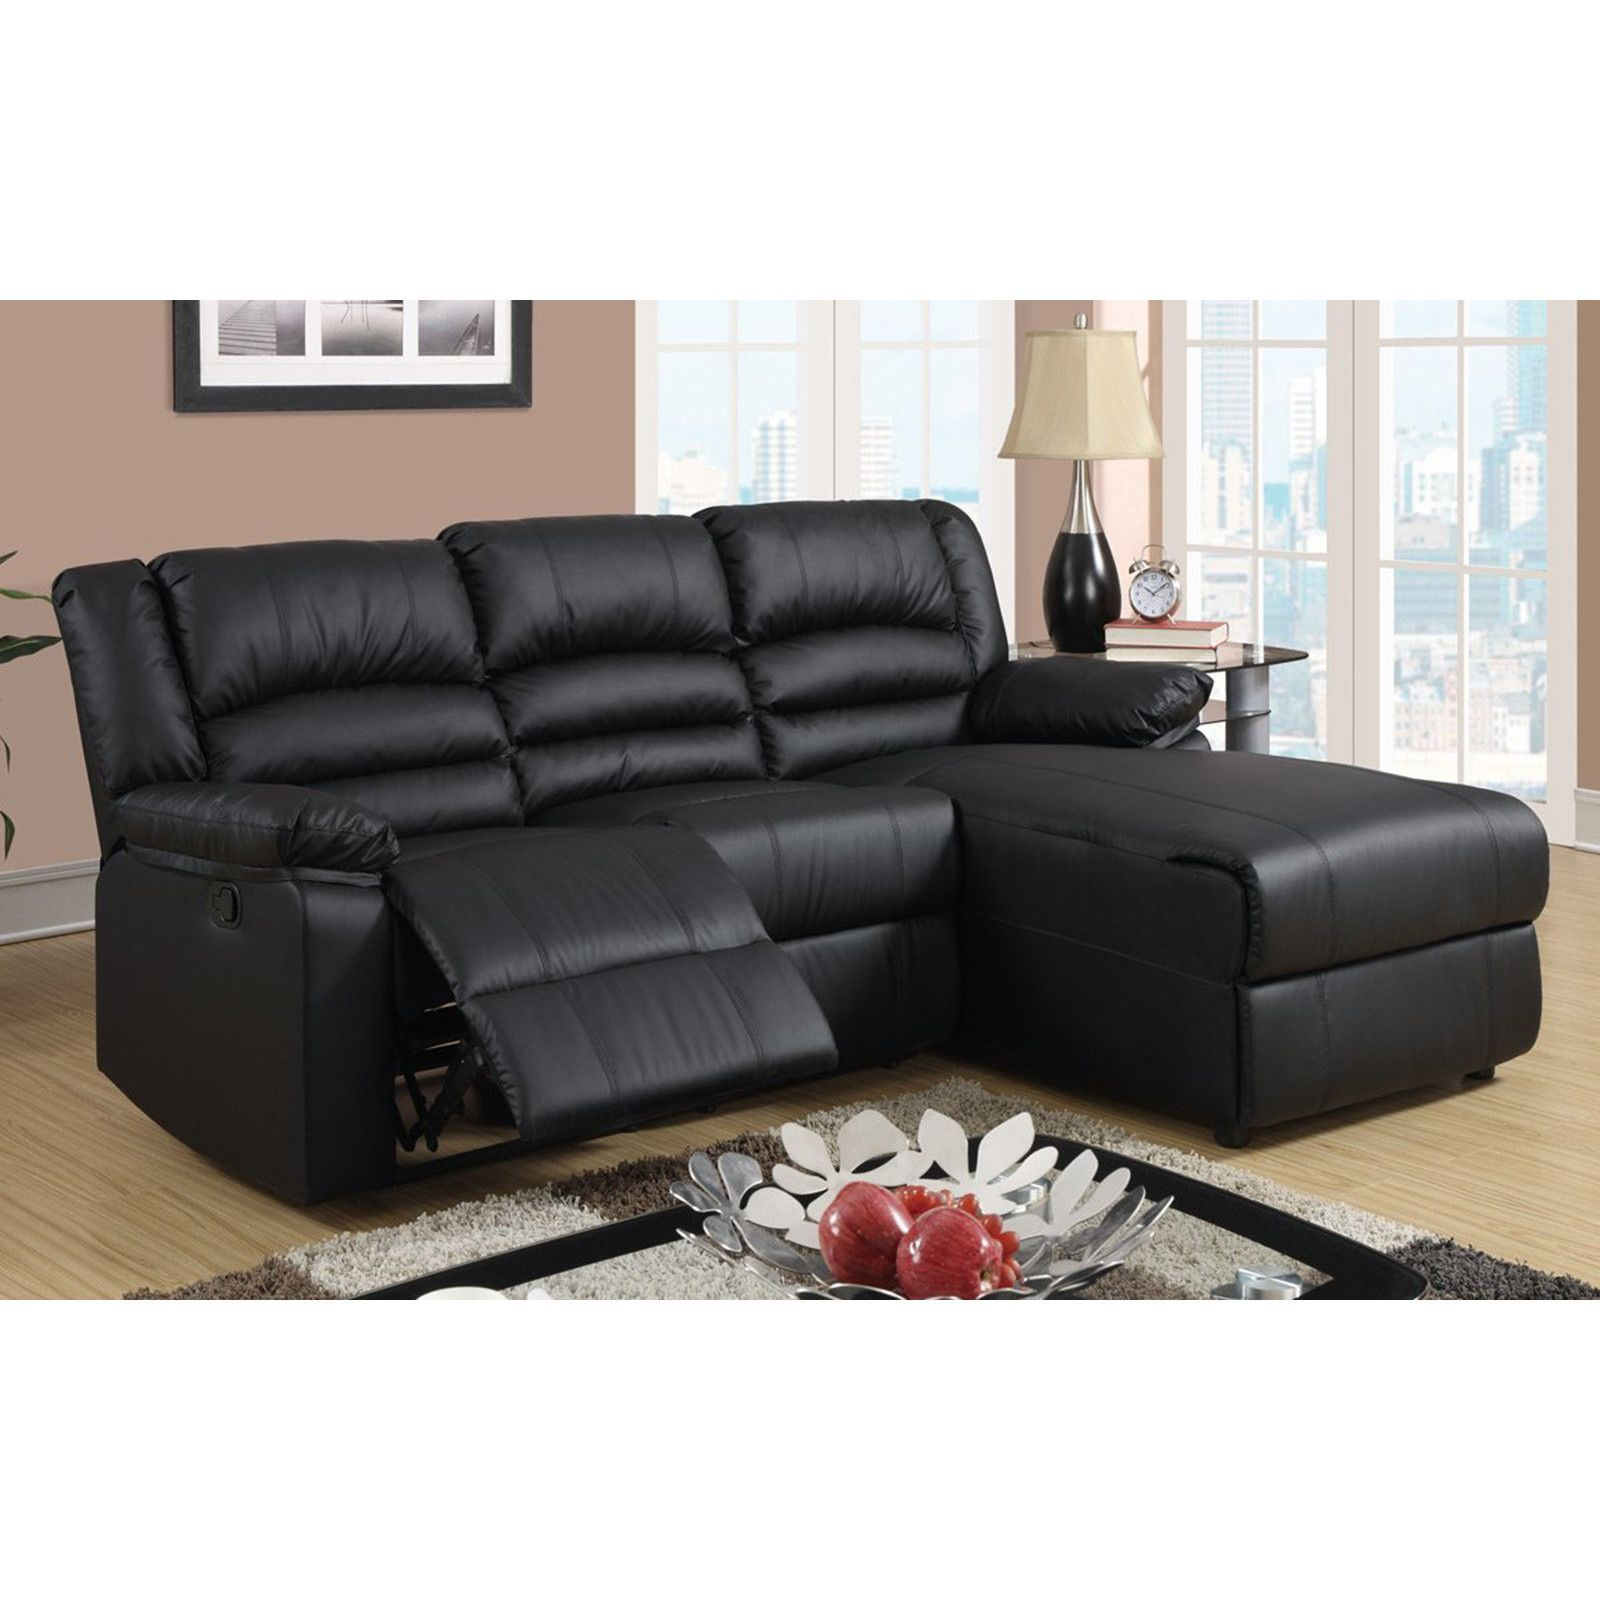 bed sectional with and chaise sofa leather apartment recliners ikea sofas queen size sleeper